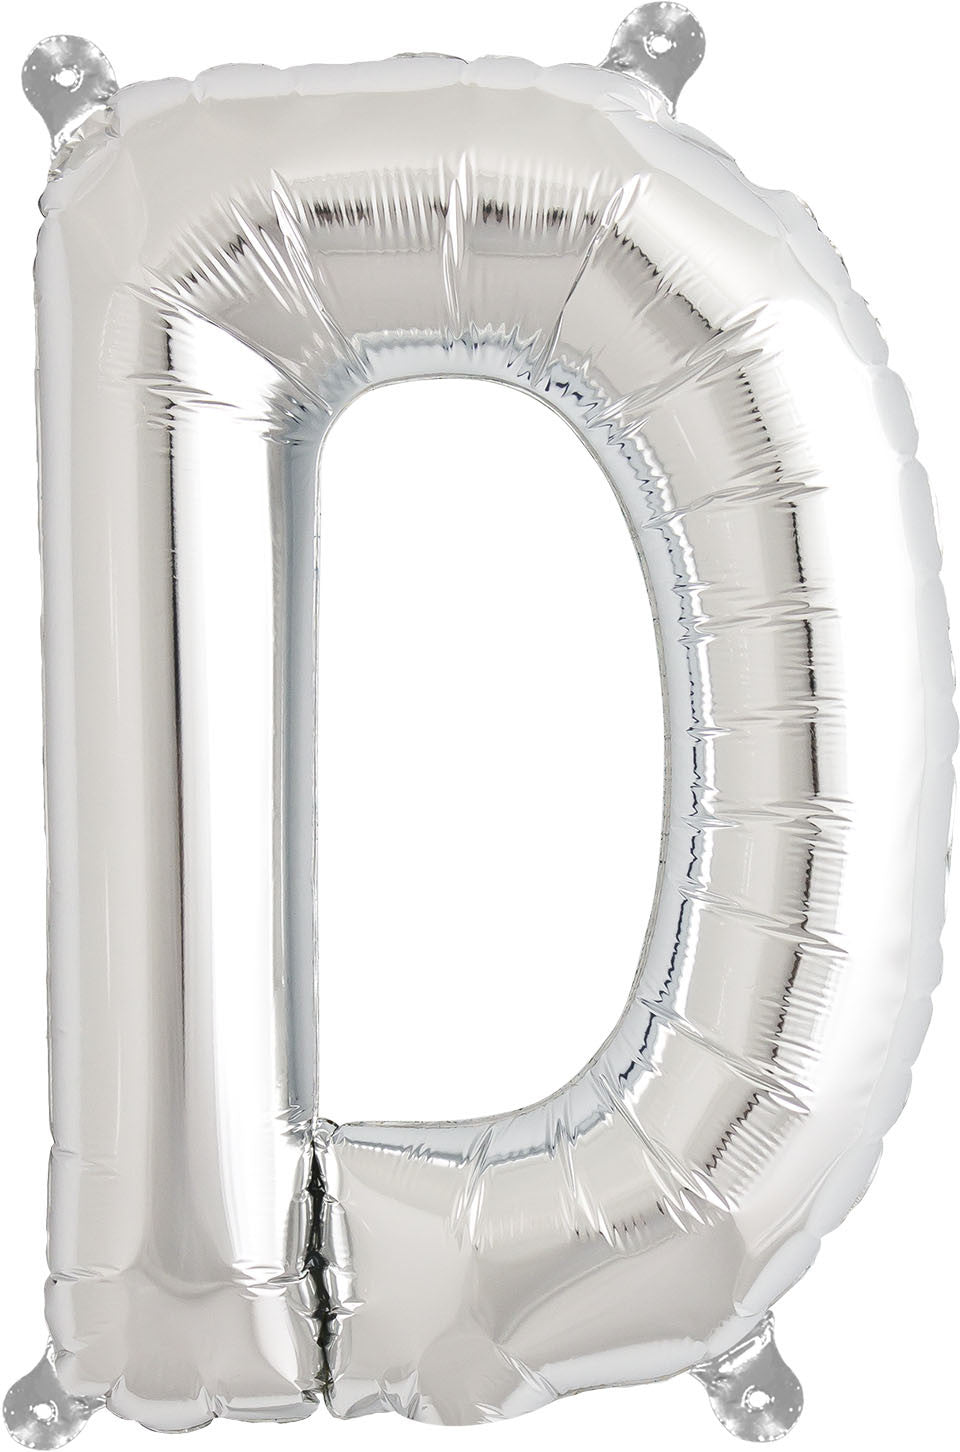 "SILVER 16"" LETTER BALLOONS from Flingers Party World Bristol Harbourside who offer a huge range of fancy dress costumes and partyware items"